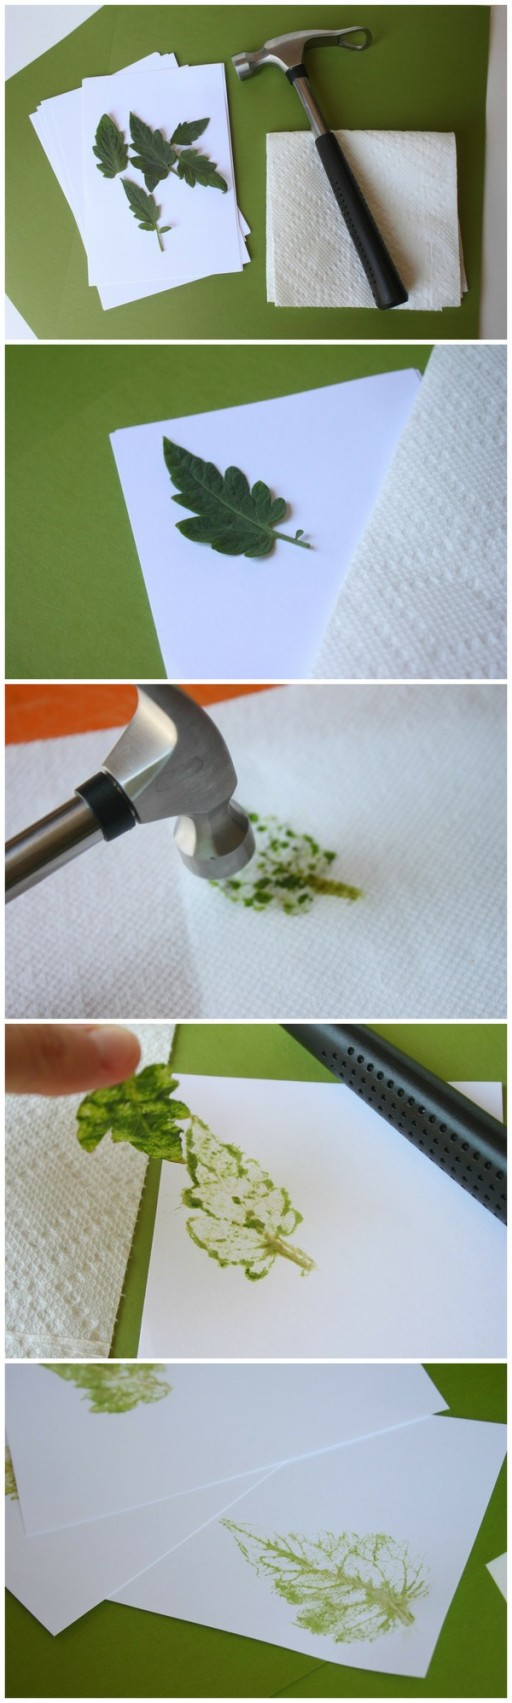 How to make cute DIY stationary with leaf stamp step by step tutorial instructions